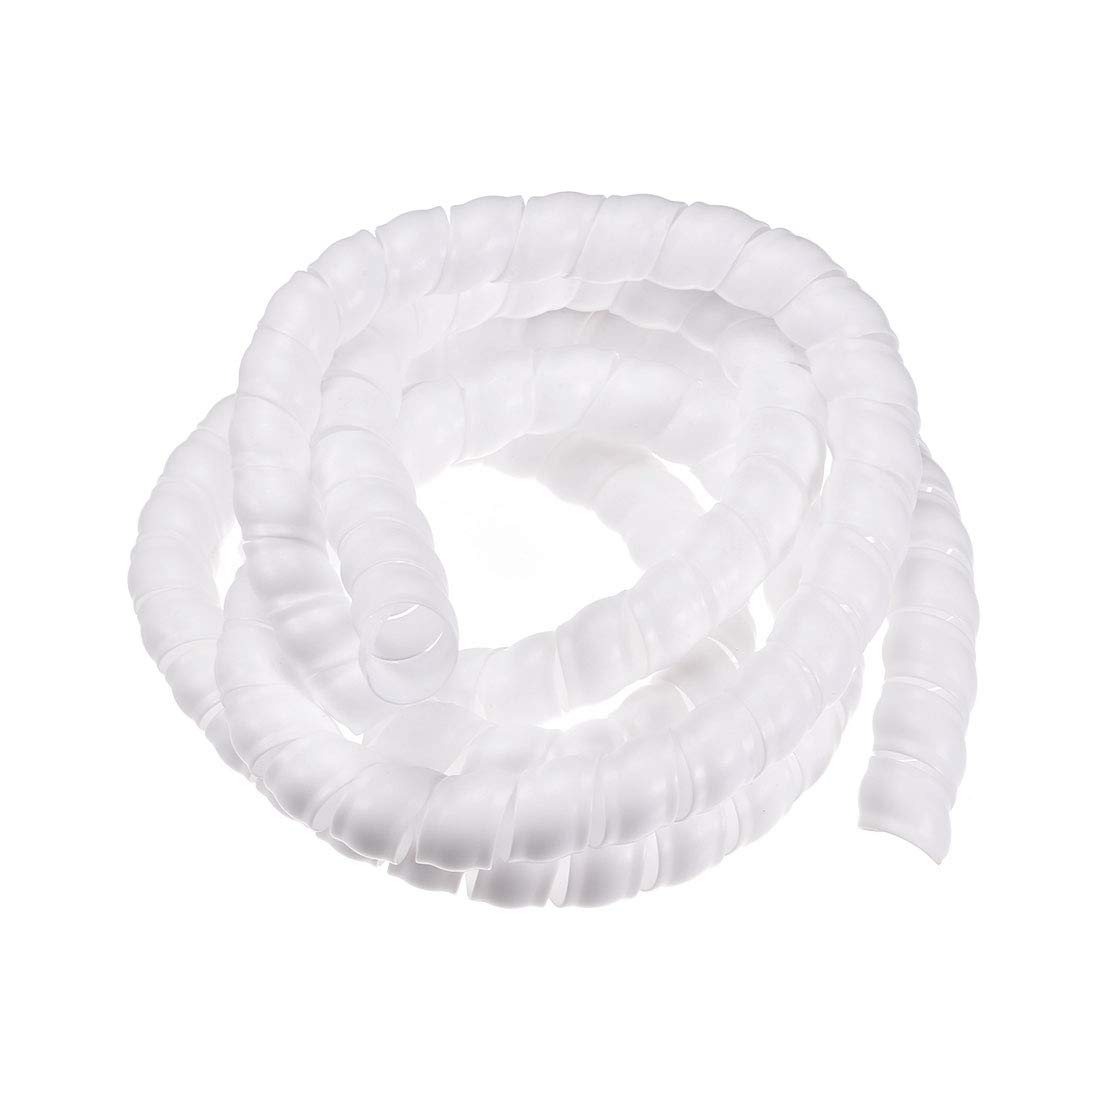 uxcell Flexible Spiral Tube Wrap Cable Management Sleeve 19mm X 22mm Computer Wire Manage Cord 2 Meters Length White: Amazon.in: Home Improvement